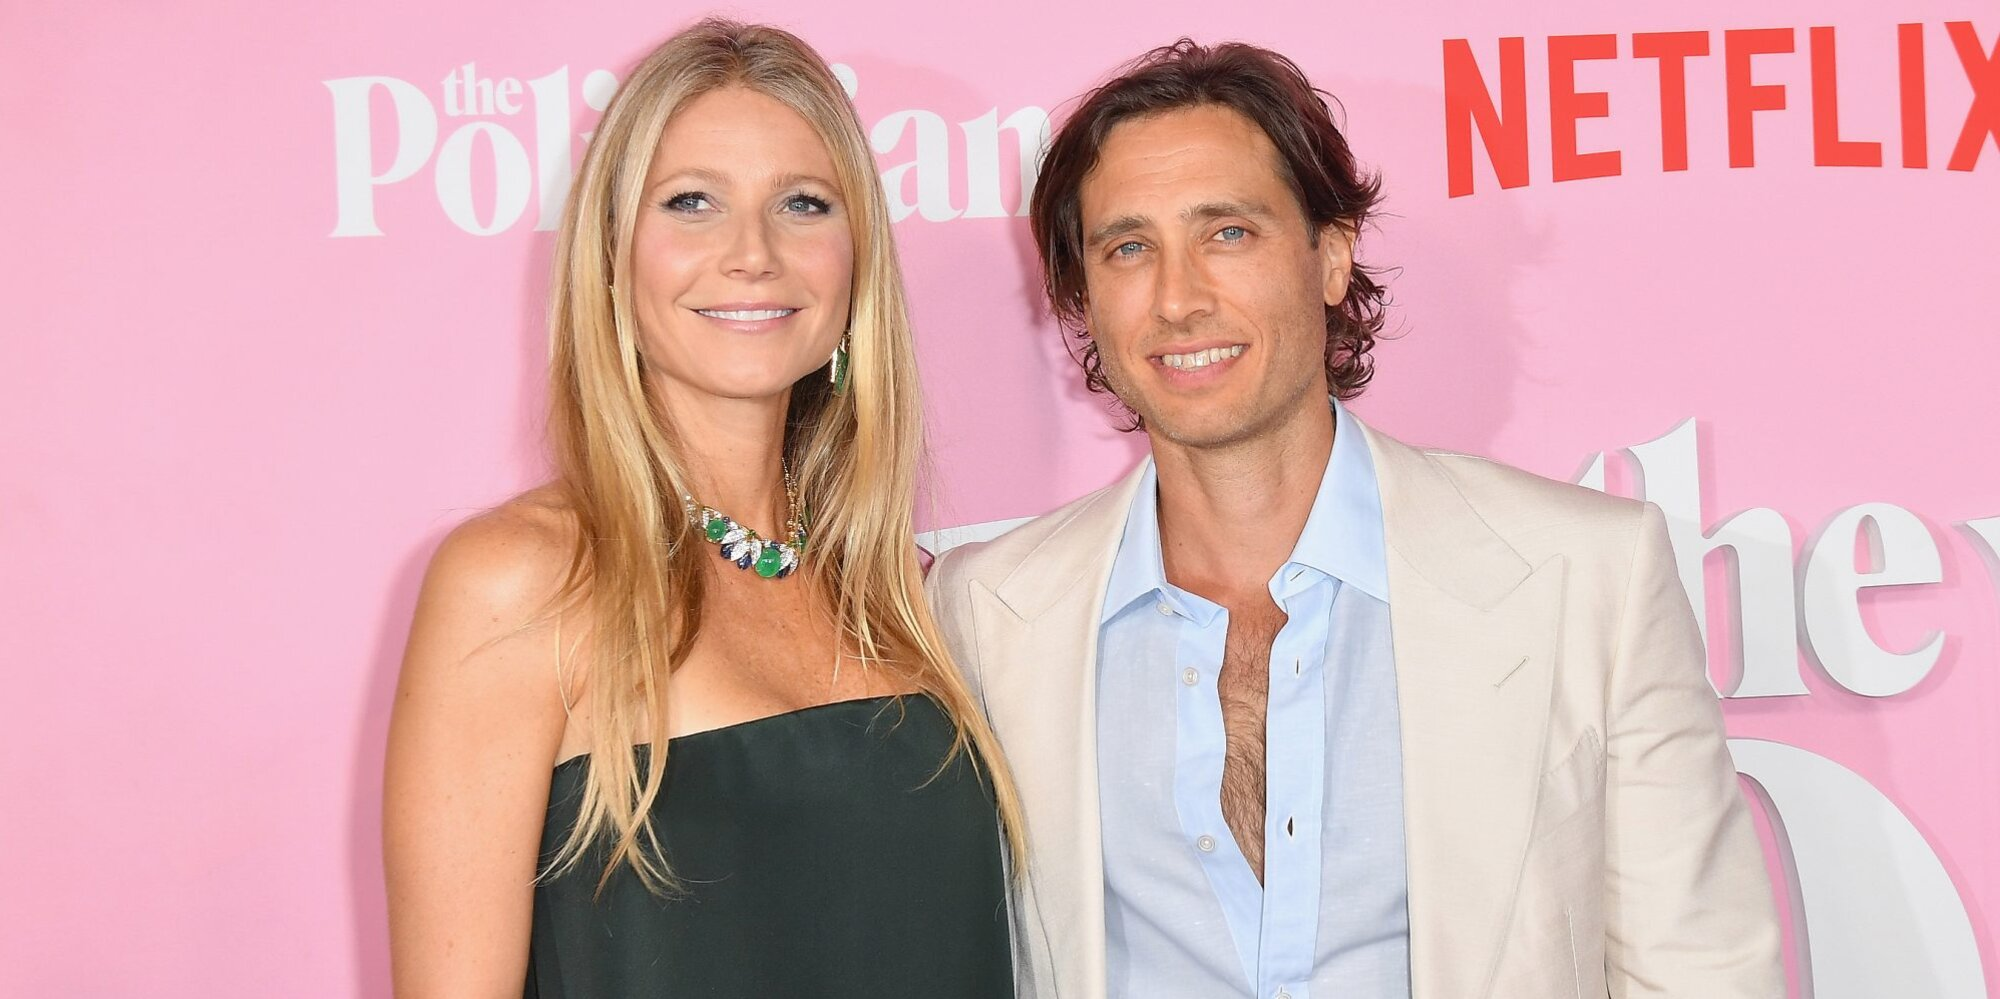 Gwyneth Paltrow Says She and Brad Falchuk Are 'Getting Better All the Time' After COVID Diagnosis